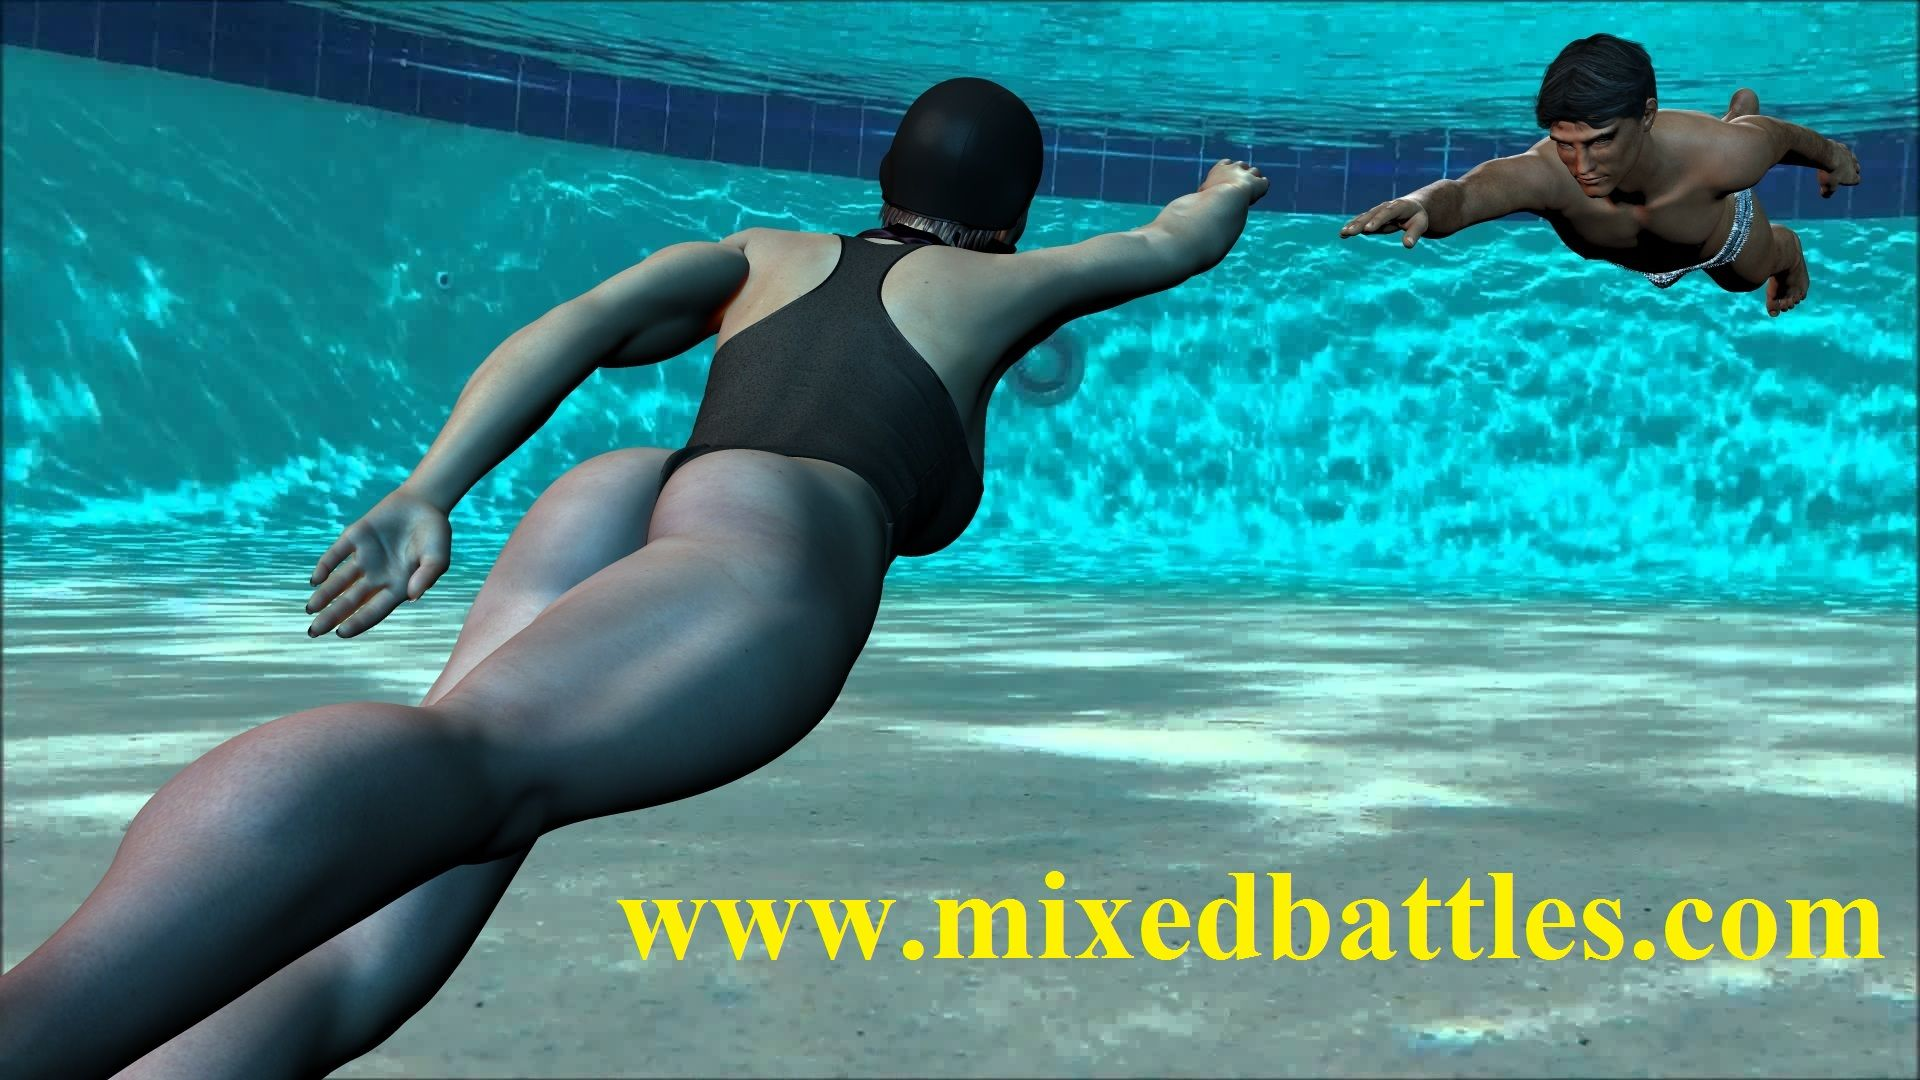 cfnm vintage mixed swimming New underwater CFNM femdom mixed wrestling gallery added to  http://www.mixedbattles